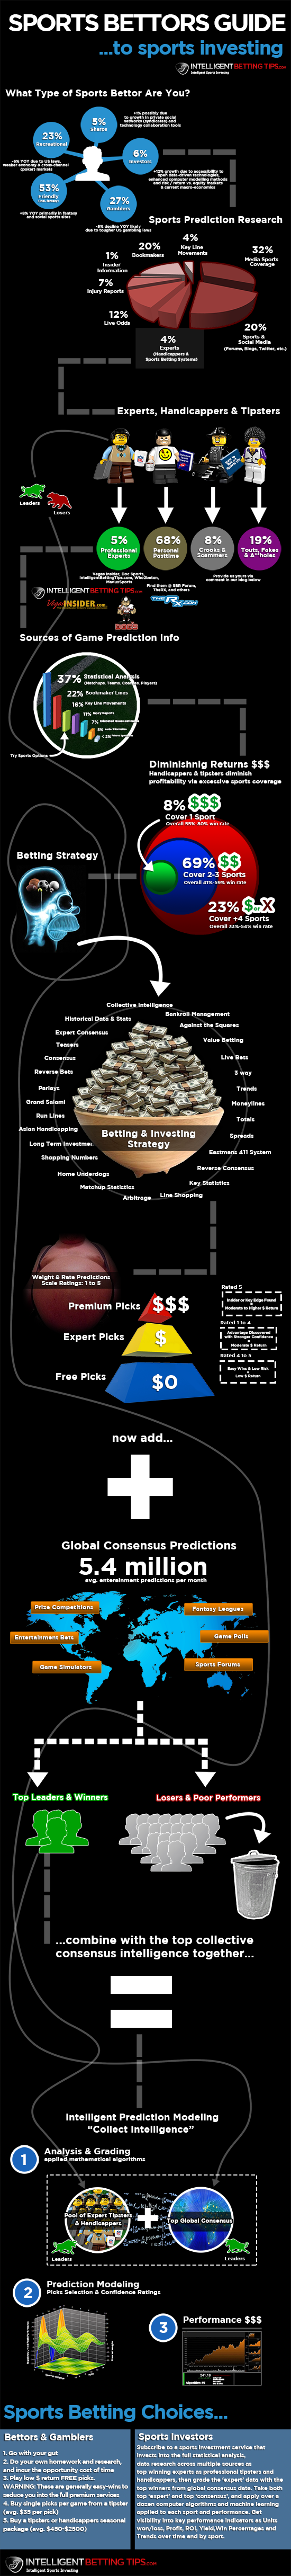 Sports Betting System Guide | Infographic